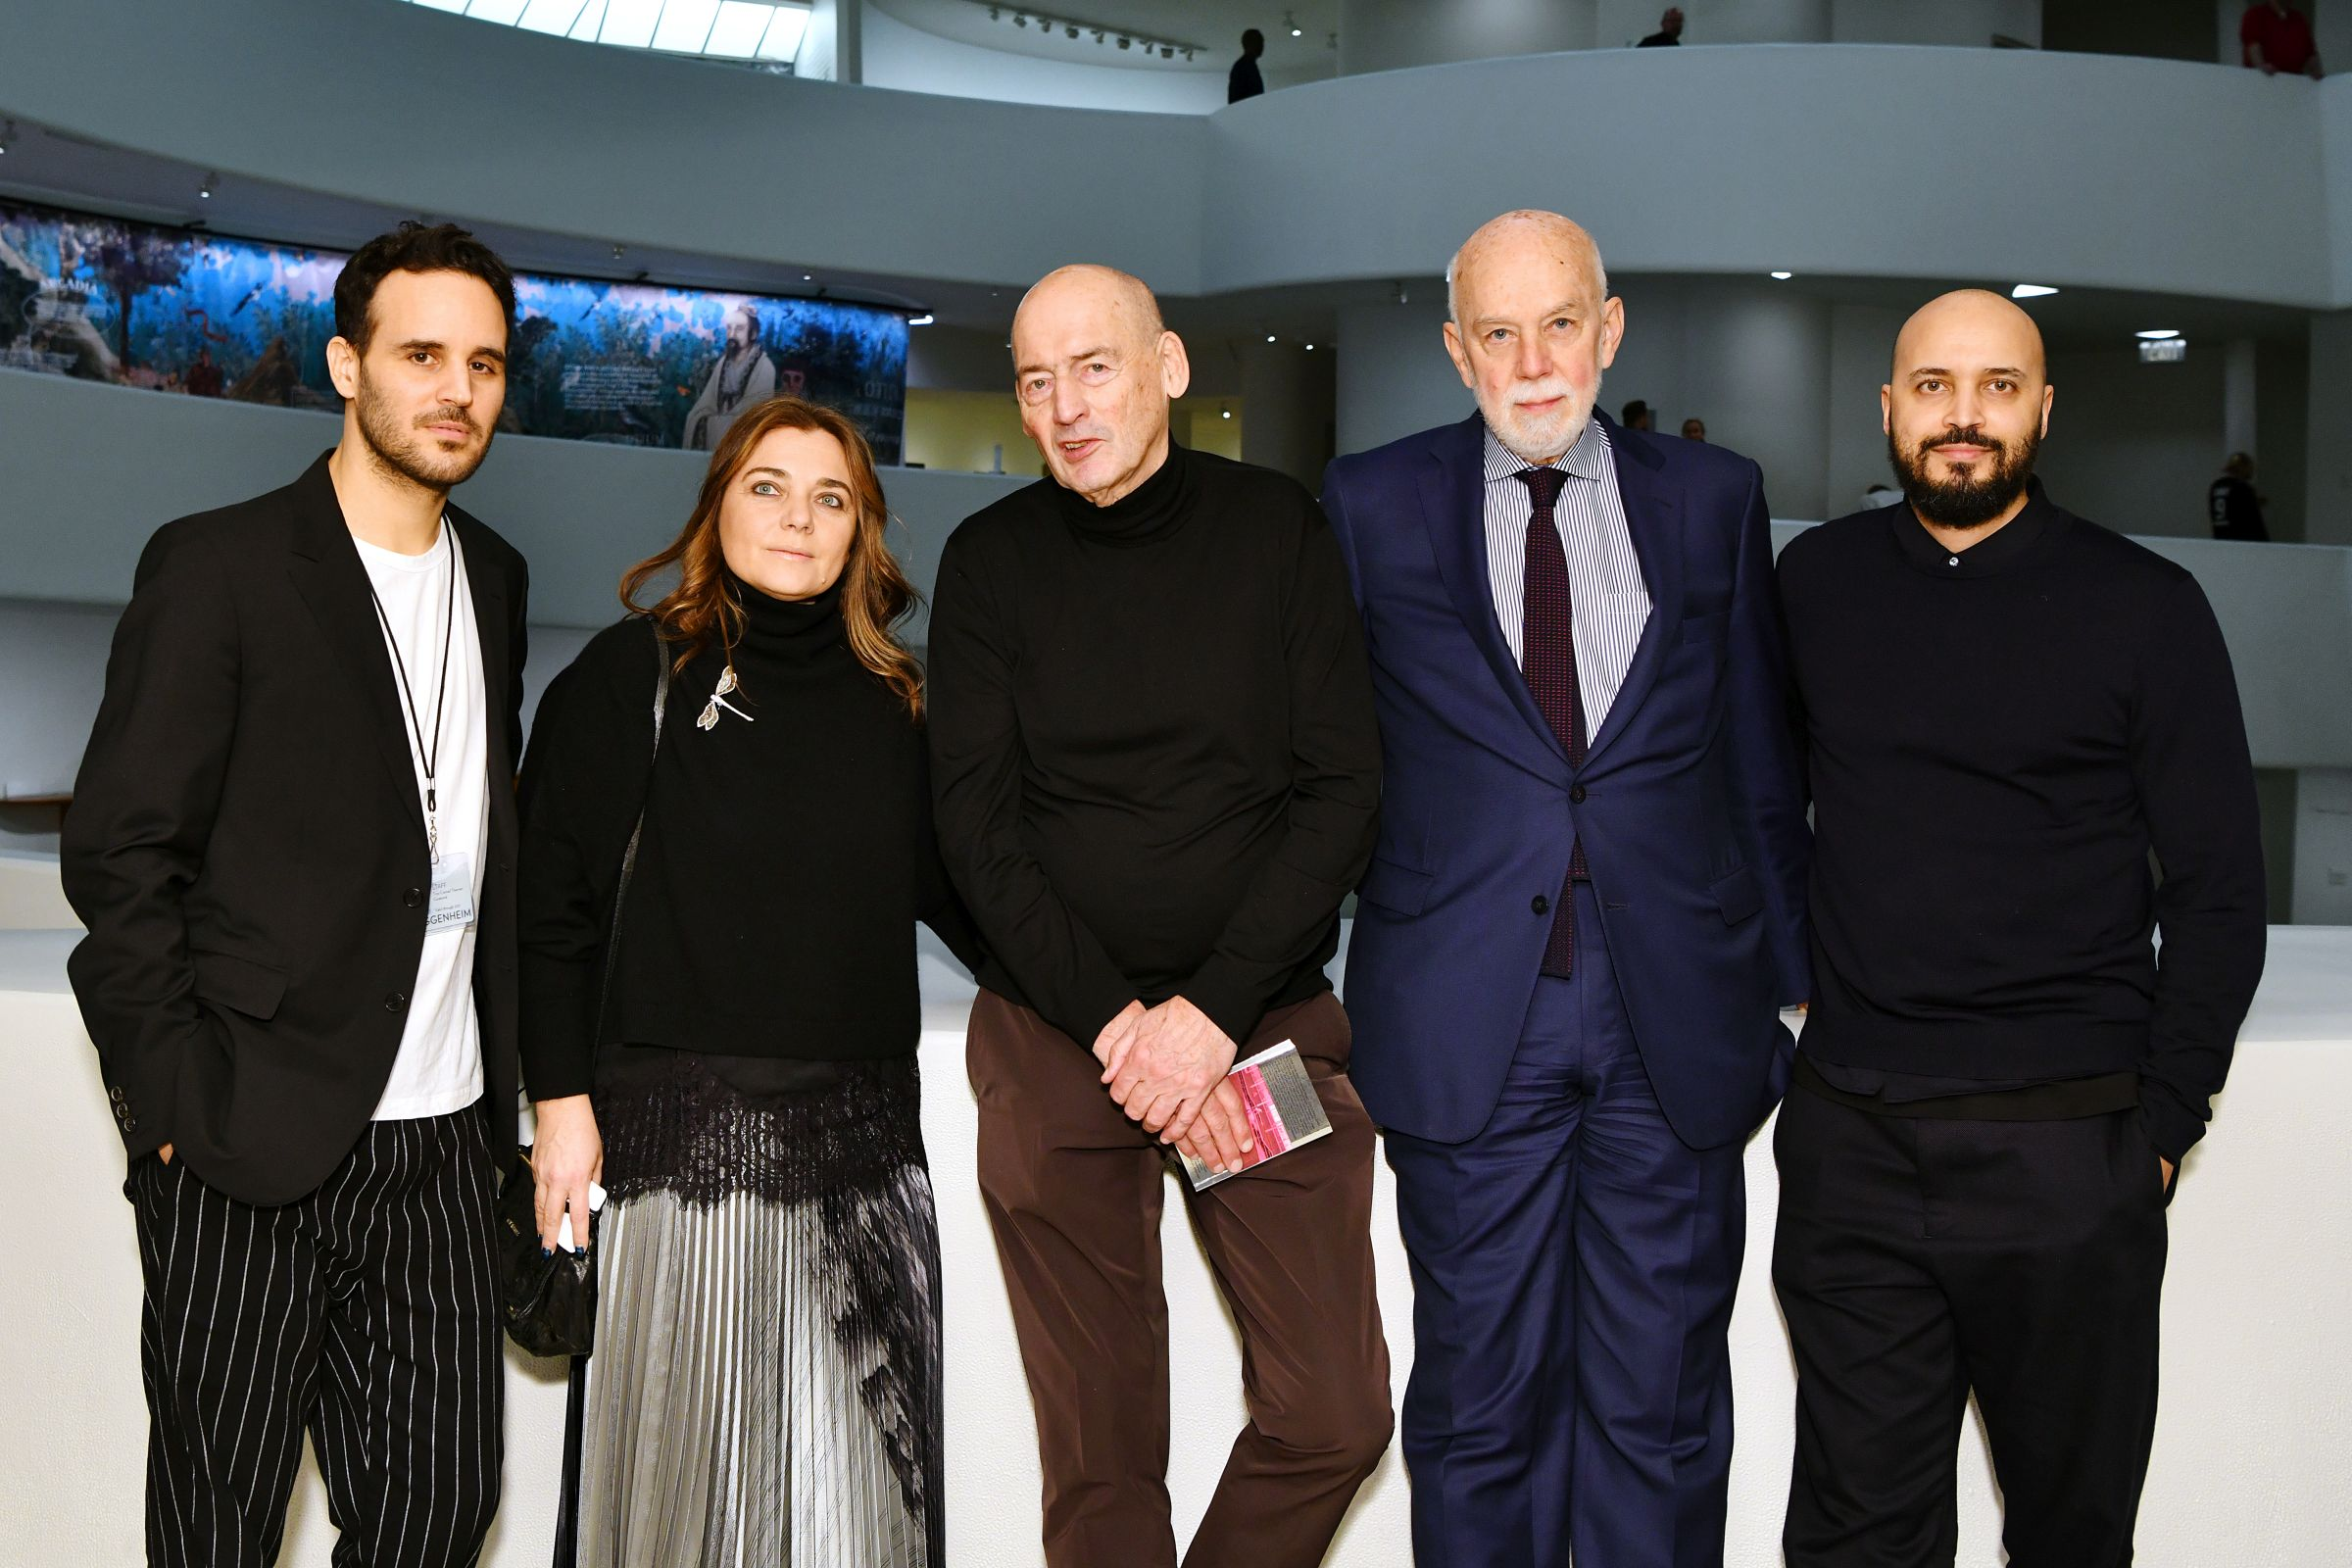 Lavazza Continues To Grow Partnership With The Solomon R. Guggenheim Museum In New York Supporting the Latest Exhibition, Countryside, The Future - Day 1